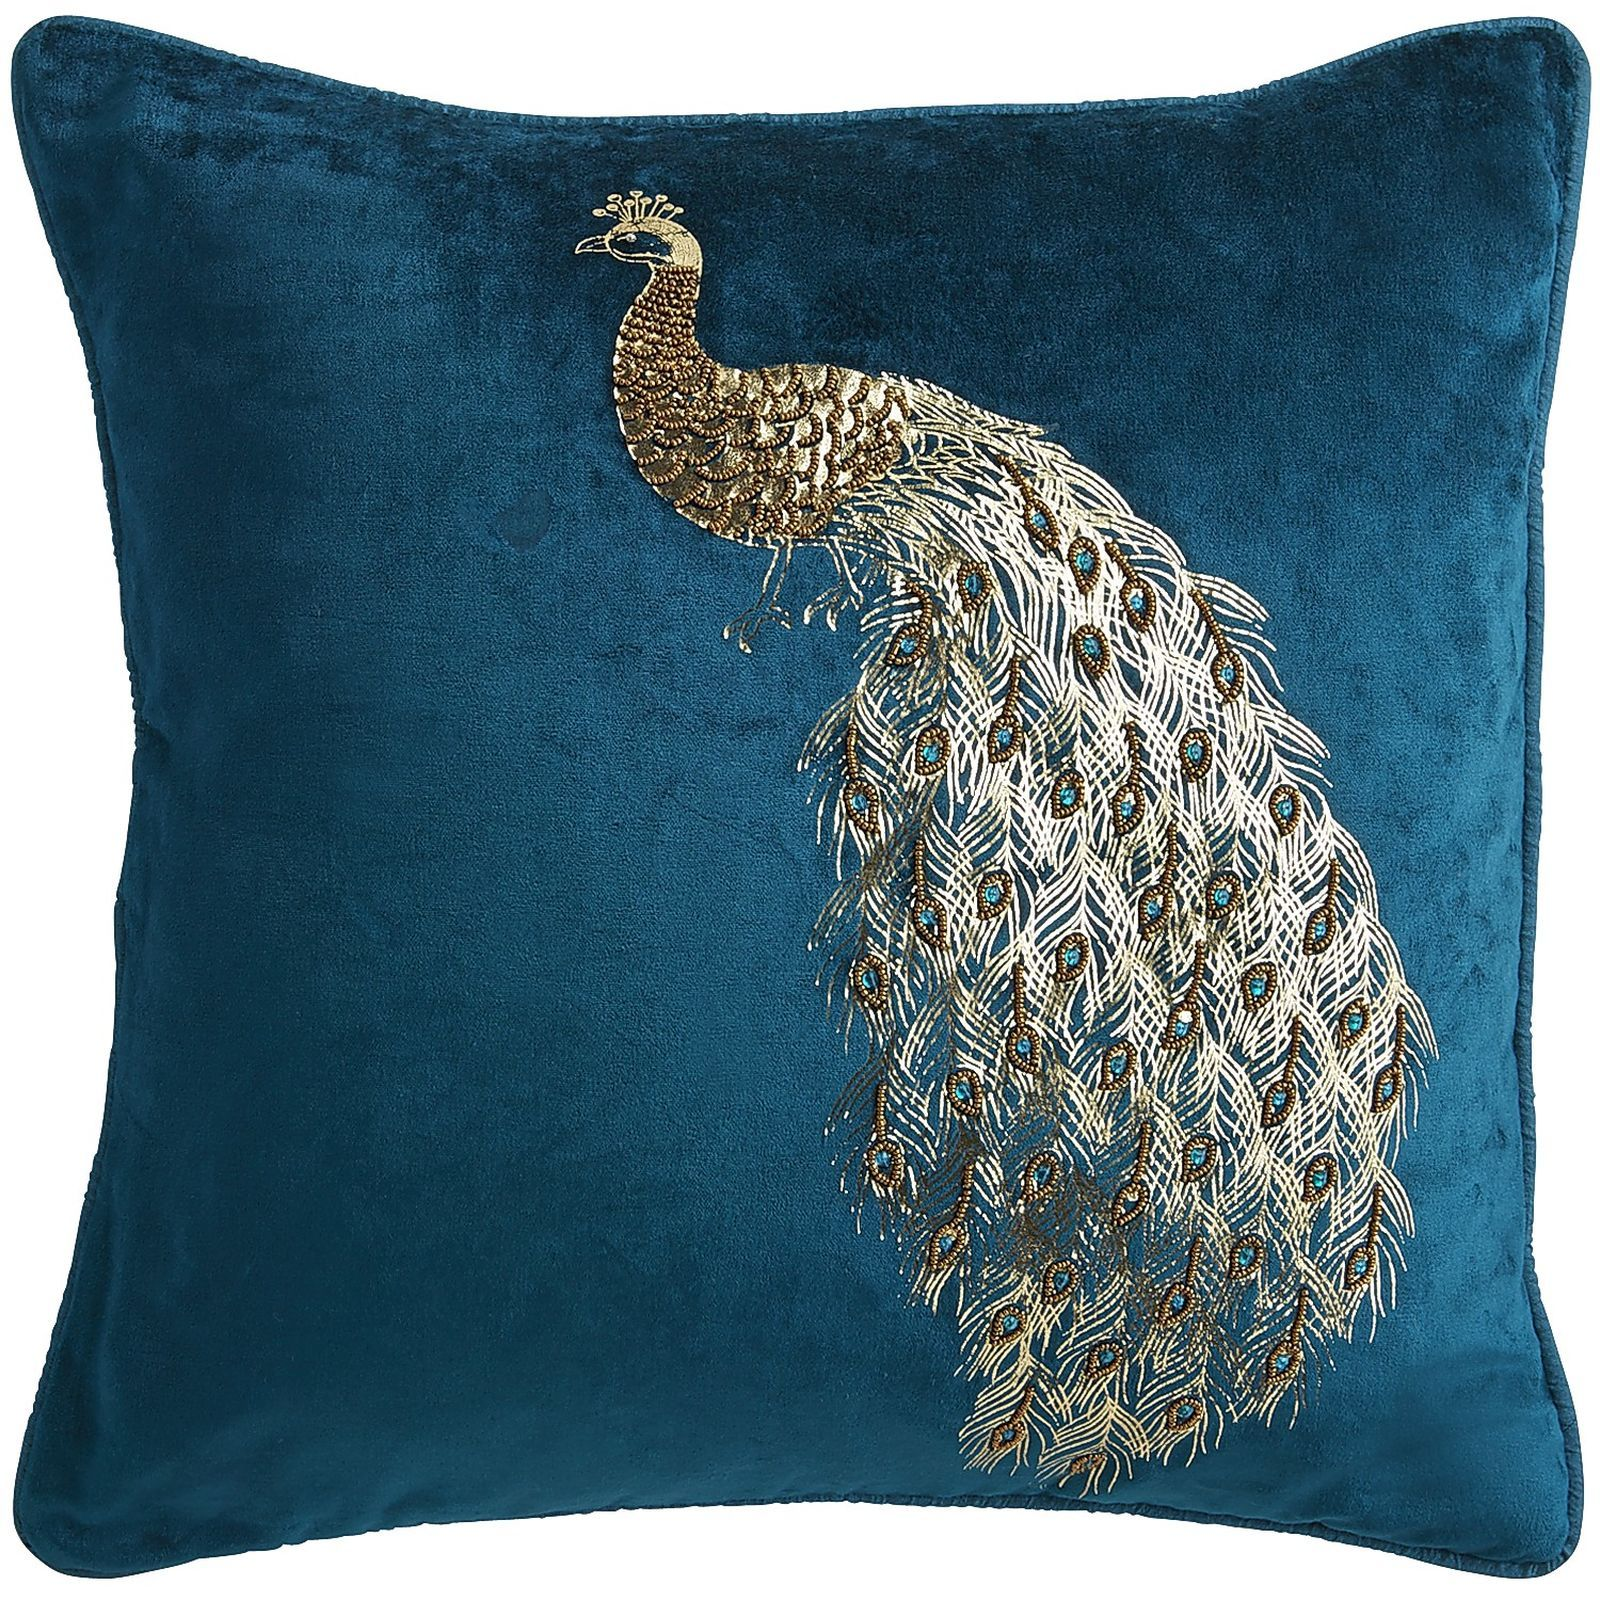 Teal Velvet Beaded Peacock Pillow My Style Peacock Pillow Teal Throw Pillows Peacock Bedroom